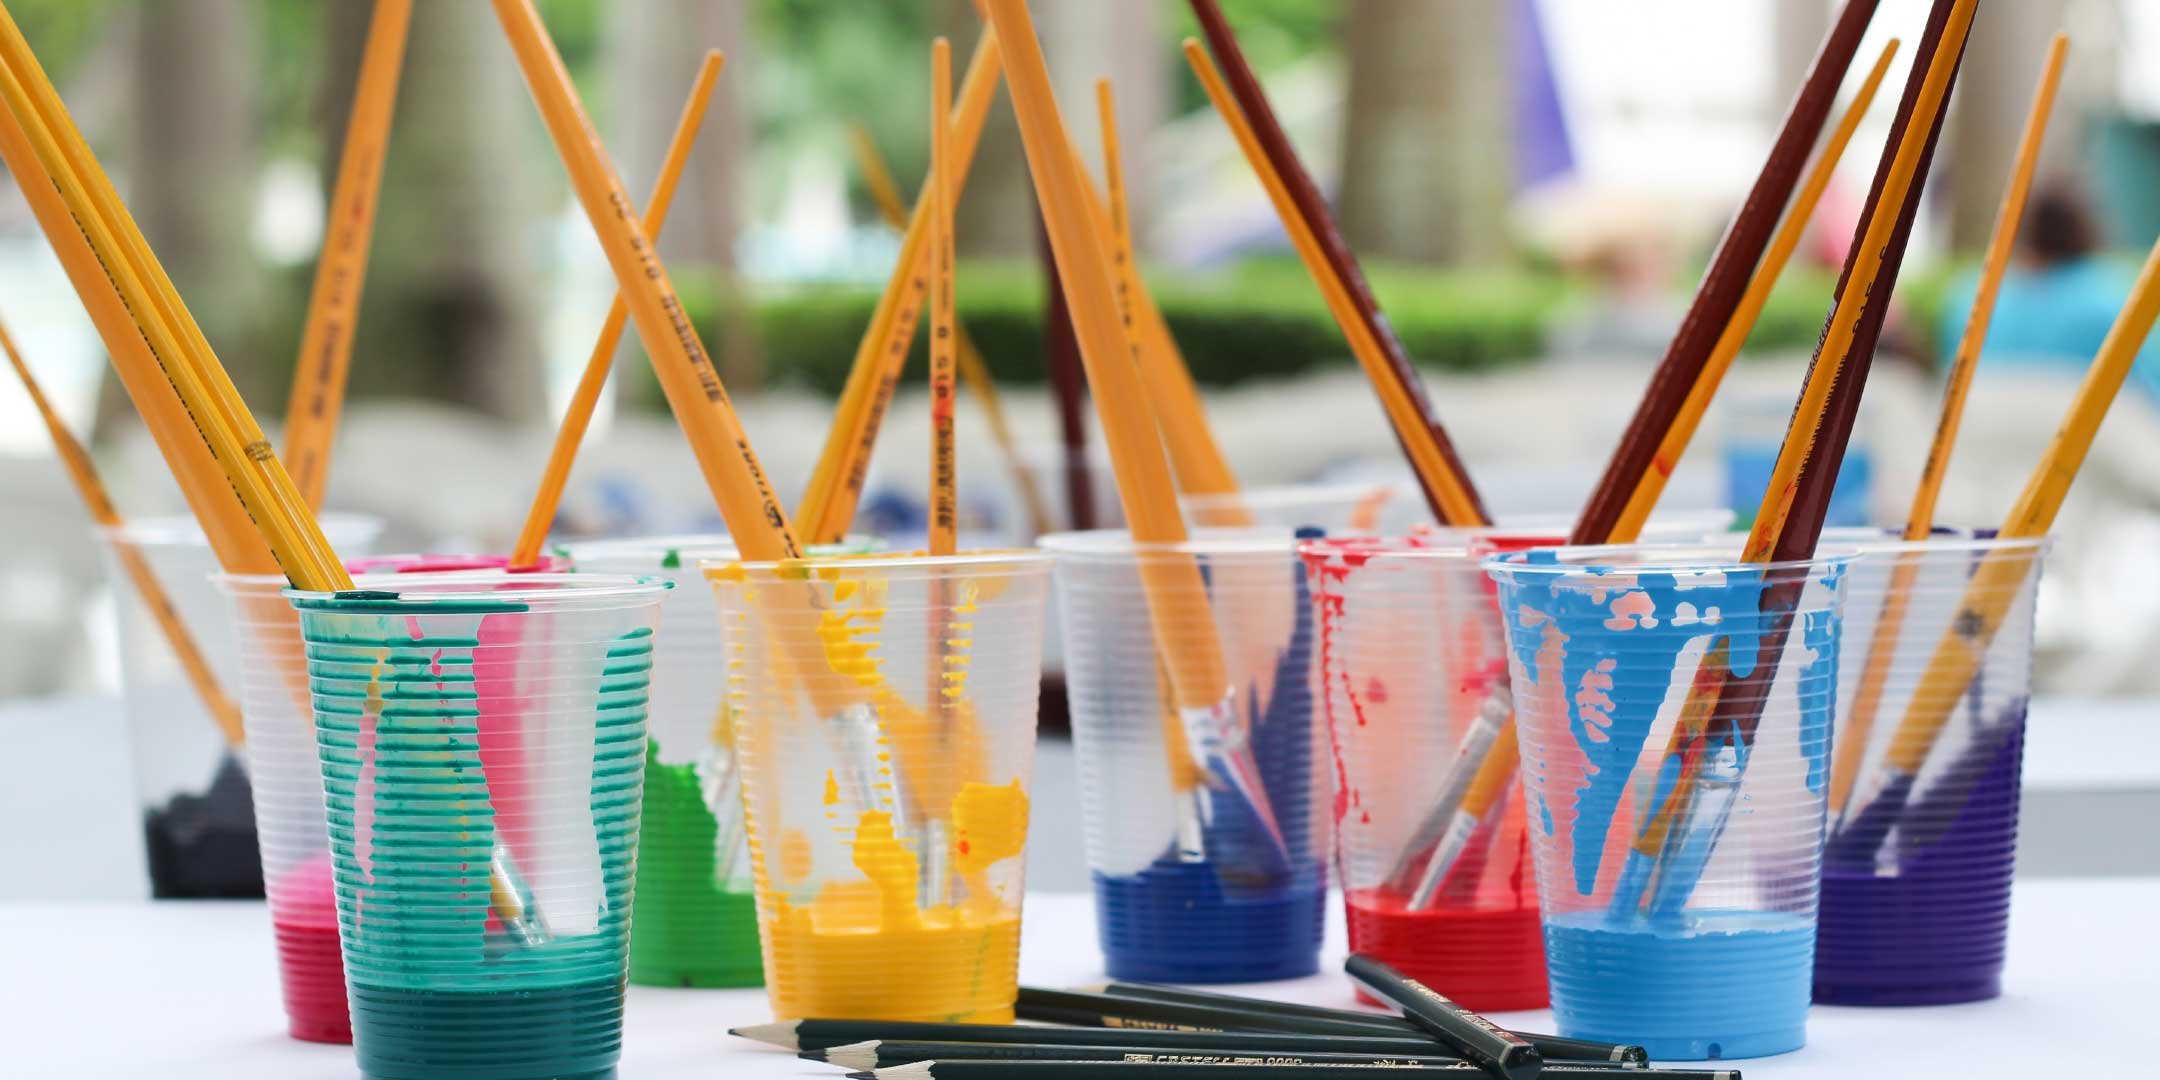 Paint brushes and pencils